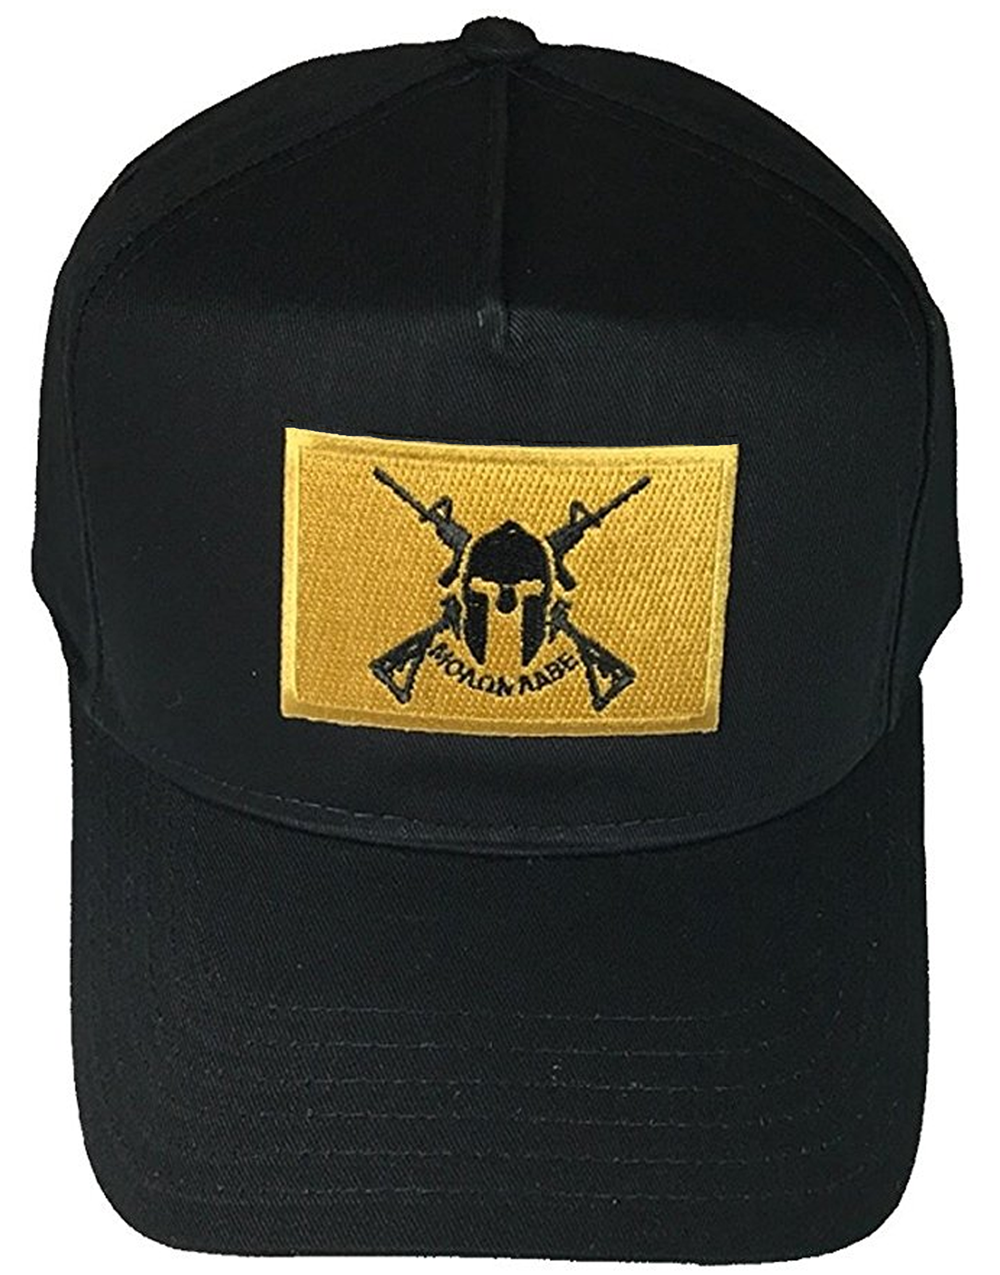 Printed MOLON LABE CROSSED RIFLES SPARTAN HELMET HAT COME AND TAKE THEM 2ND SECOND AMEND